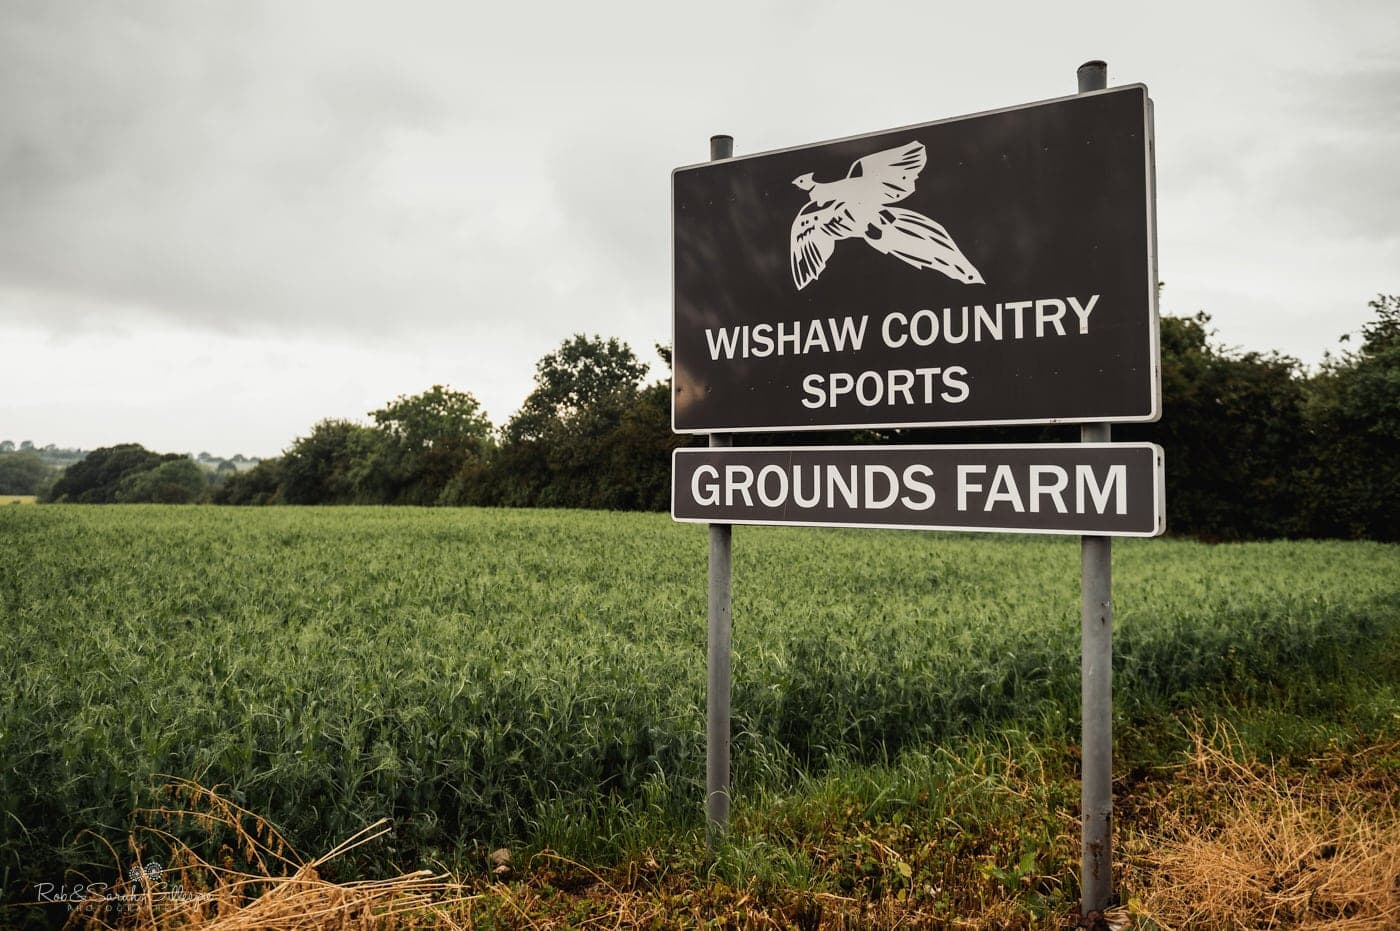 Wishaw Country Sports